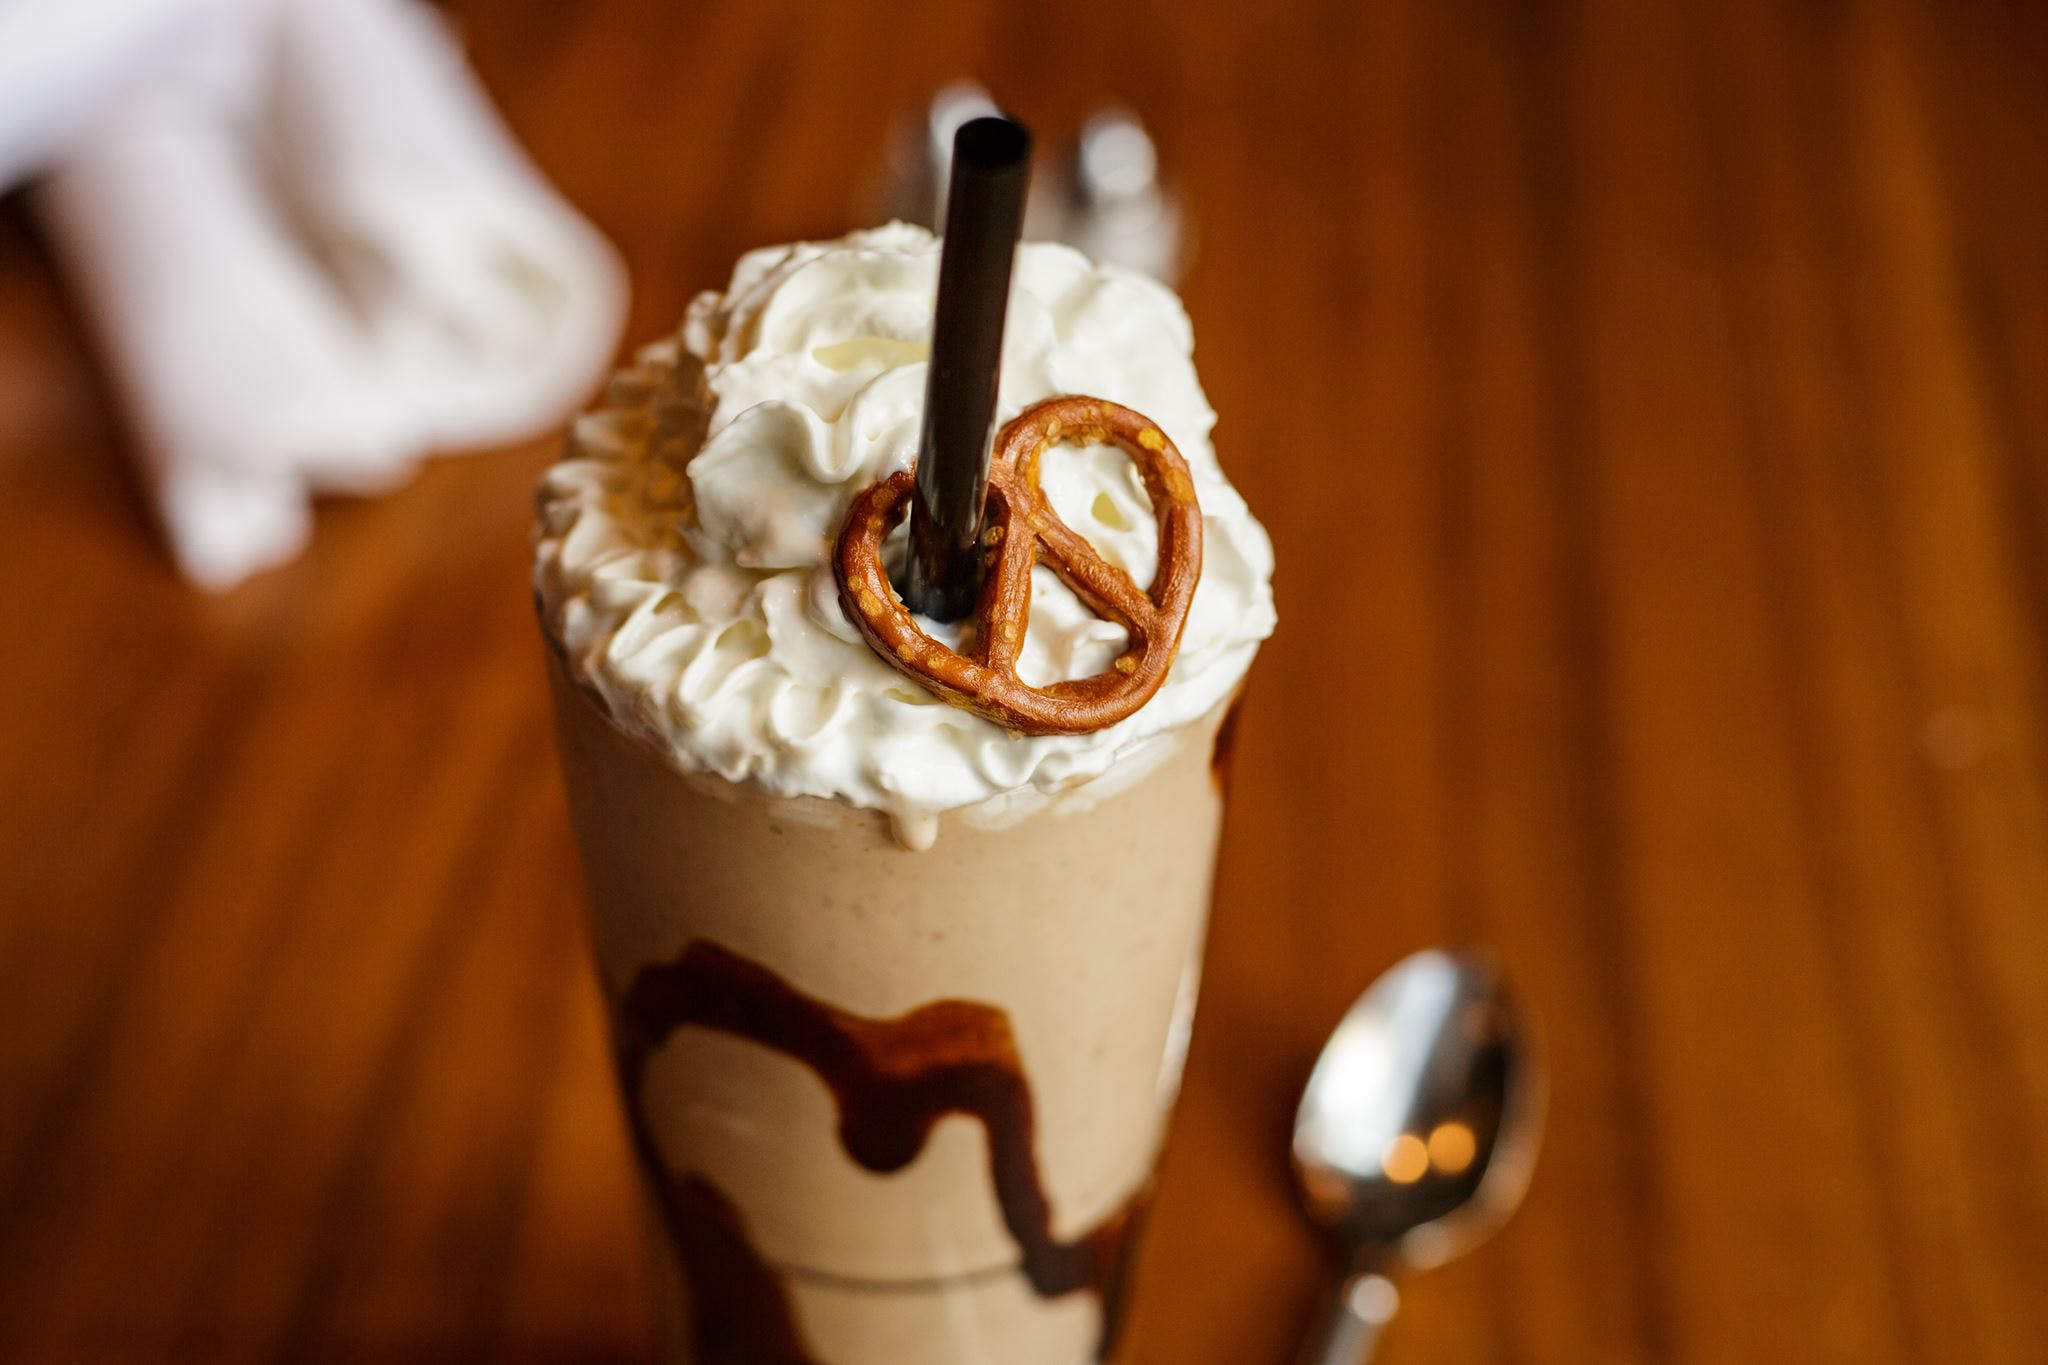 Chocolate Peanut Butter Pretzel Shake from DLUX in Madison, WI